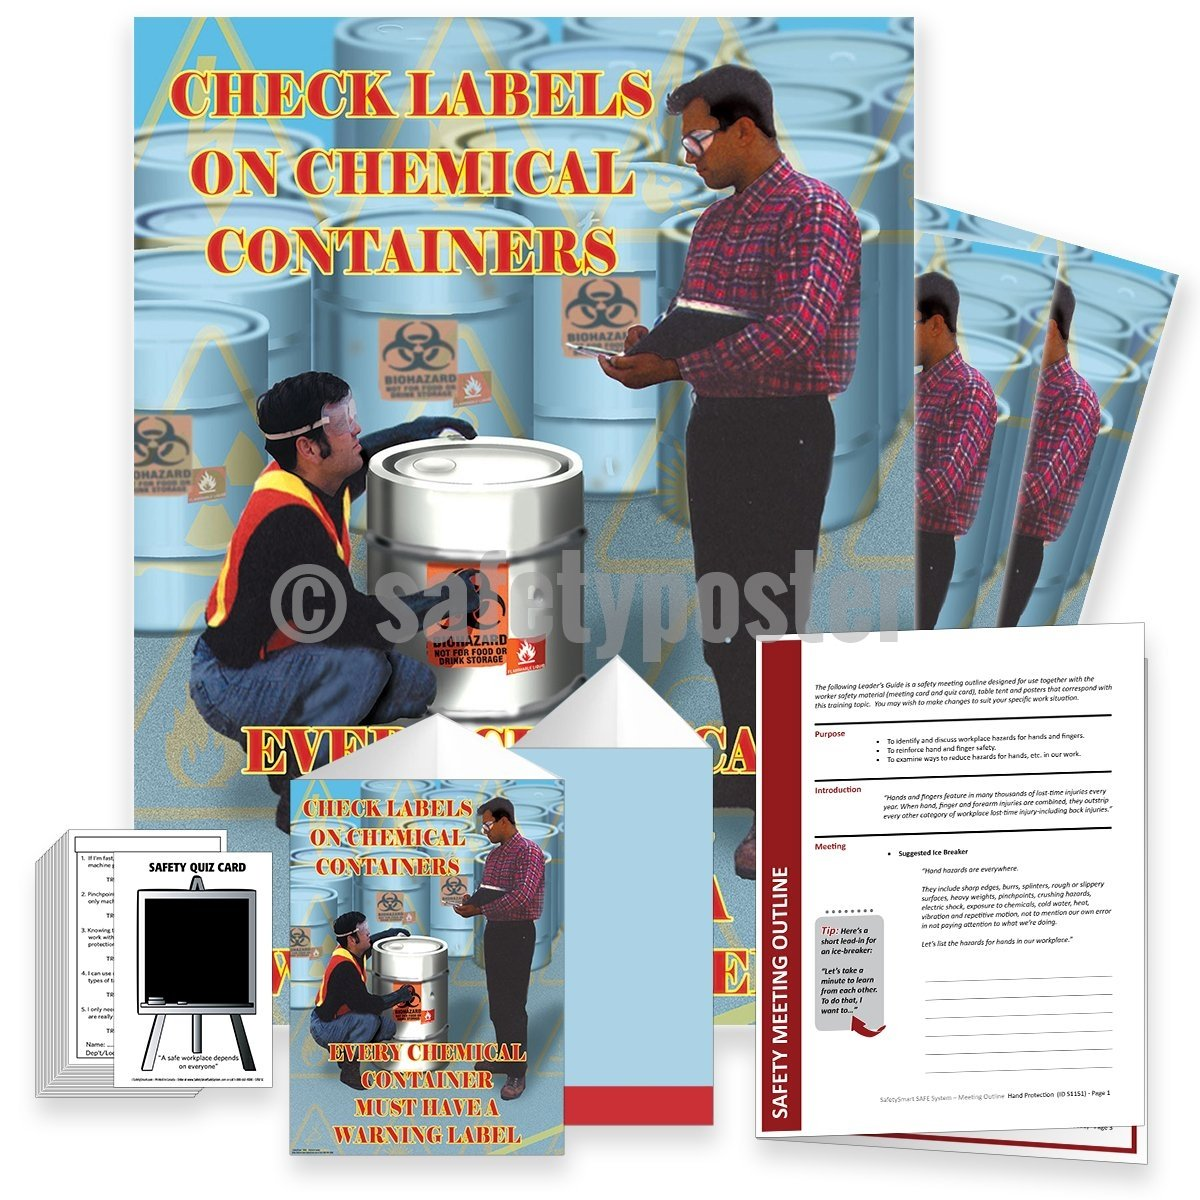 Safety Meeting Kit - Every Chemical Container Must Have A Warning Label Kits